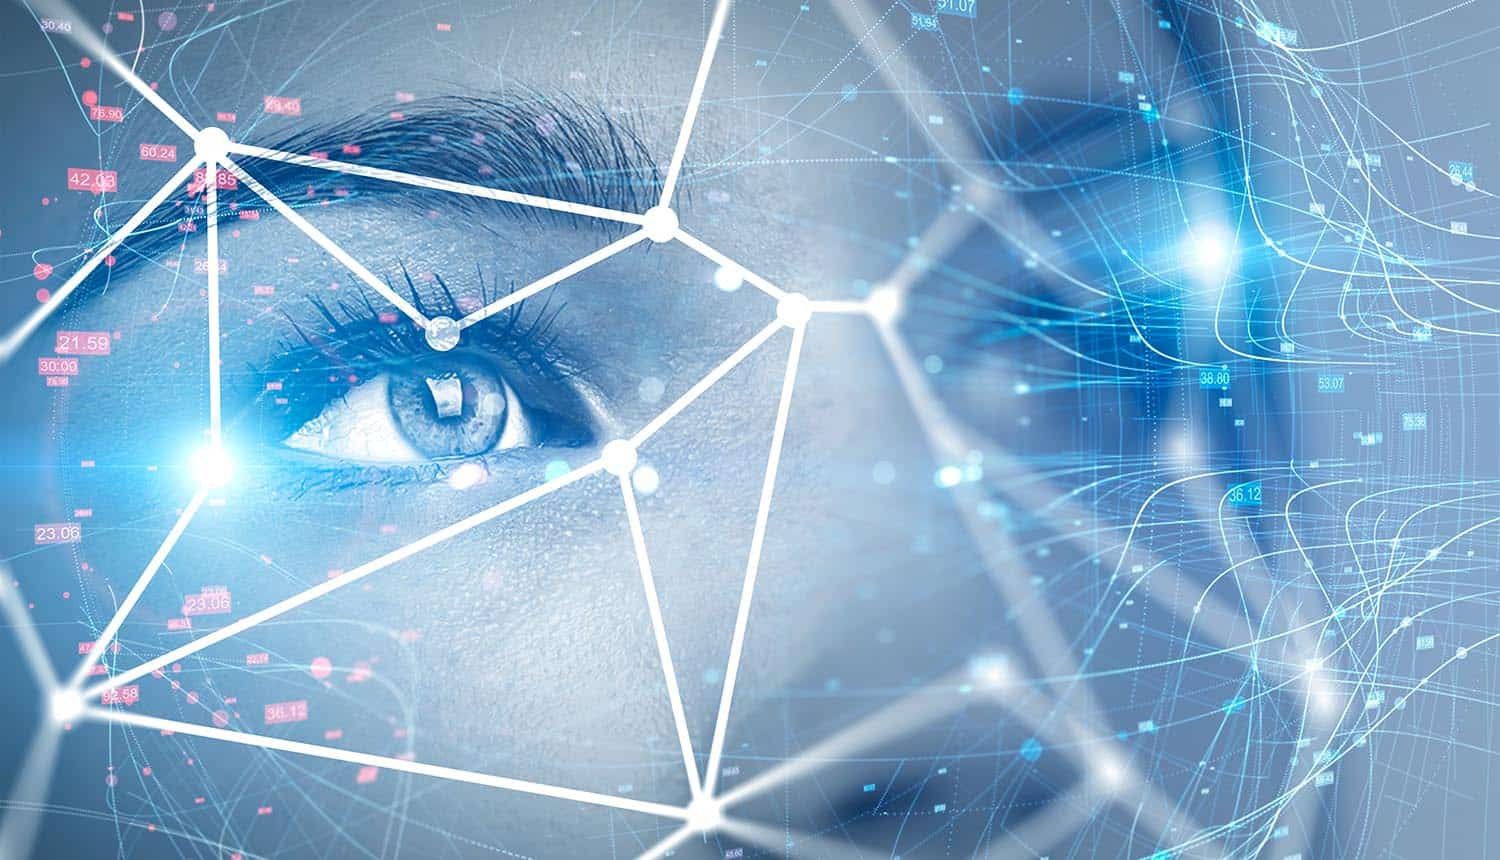 Privacy concerns about the use of facial recognition technology